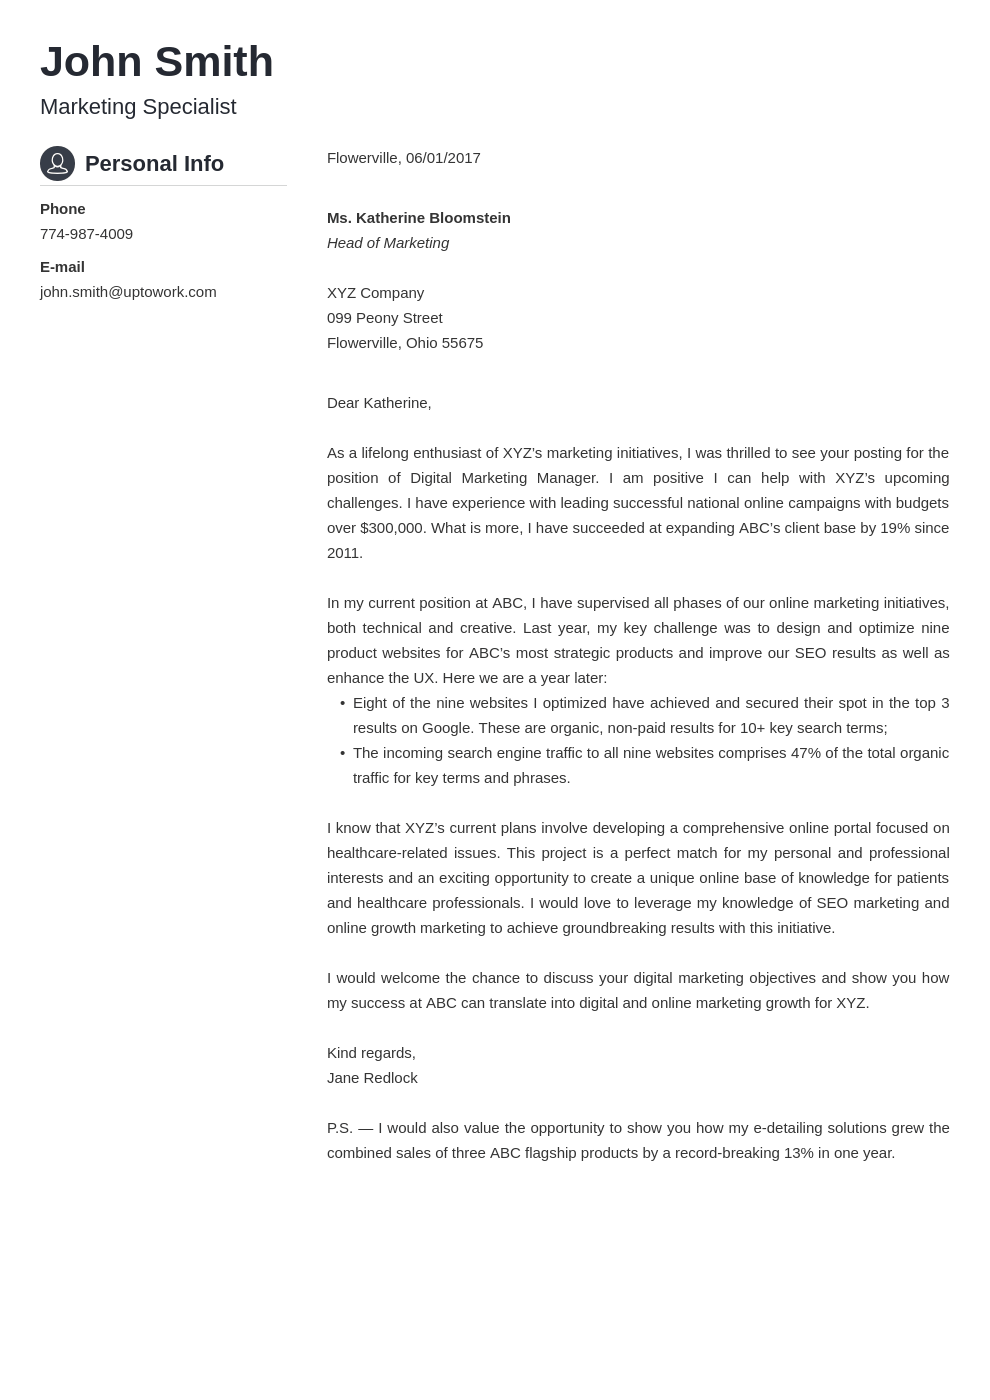 20 Cover Letter Templates Fill Them In and Download in 5 Minutes